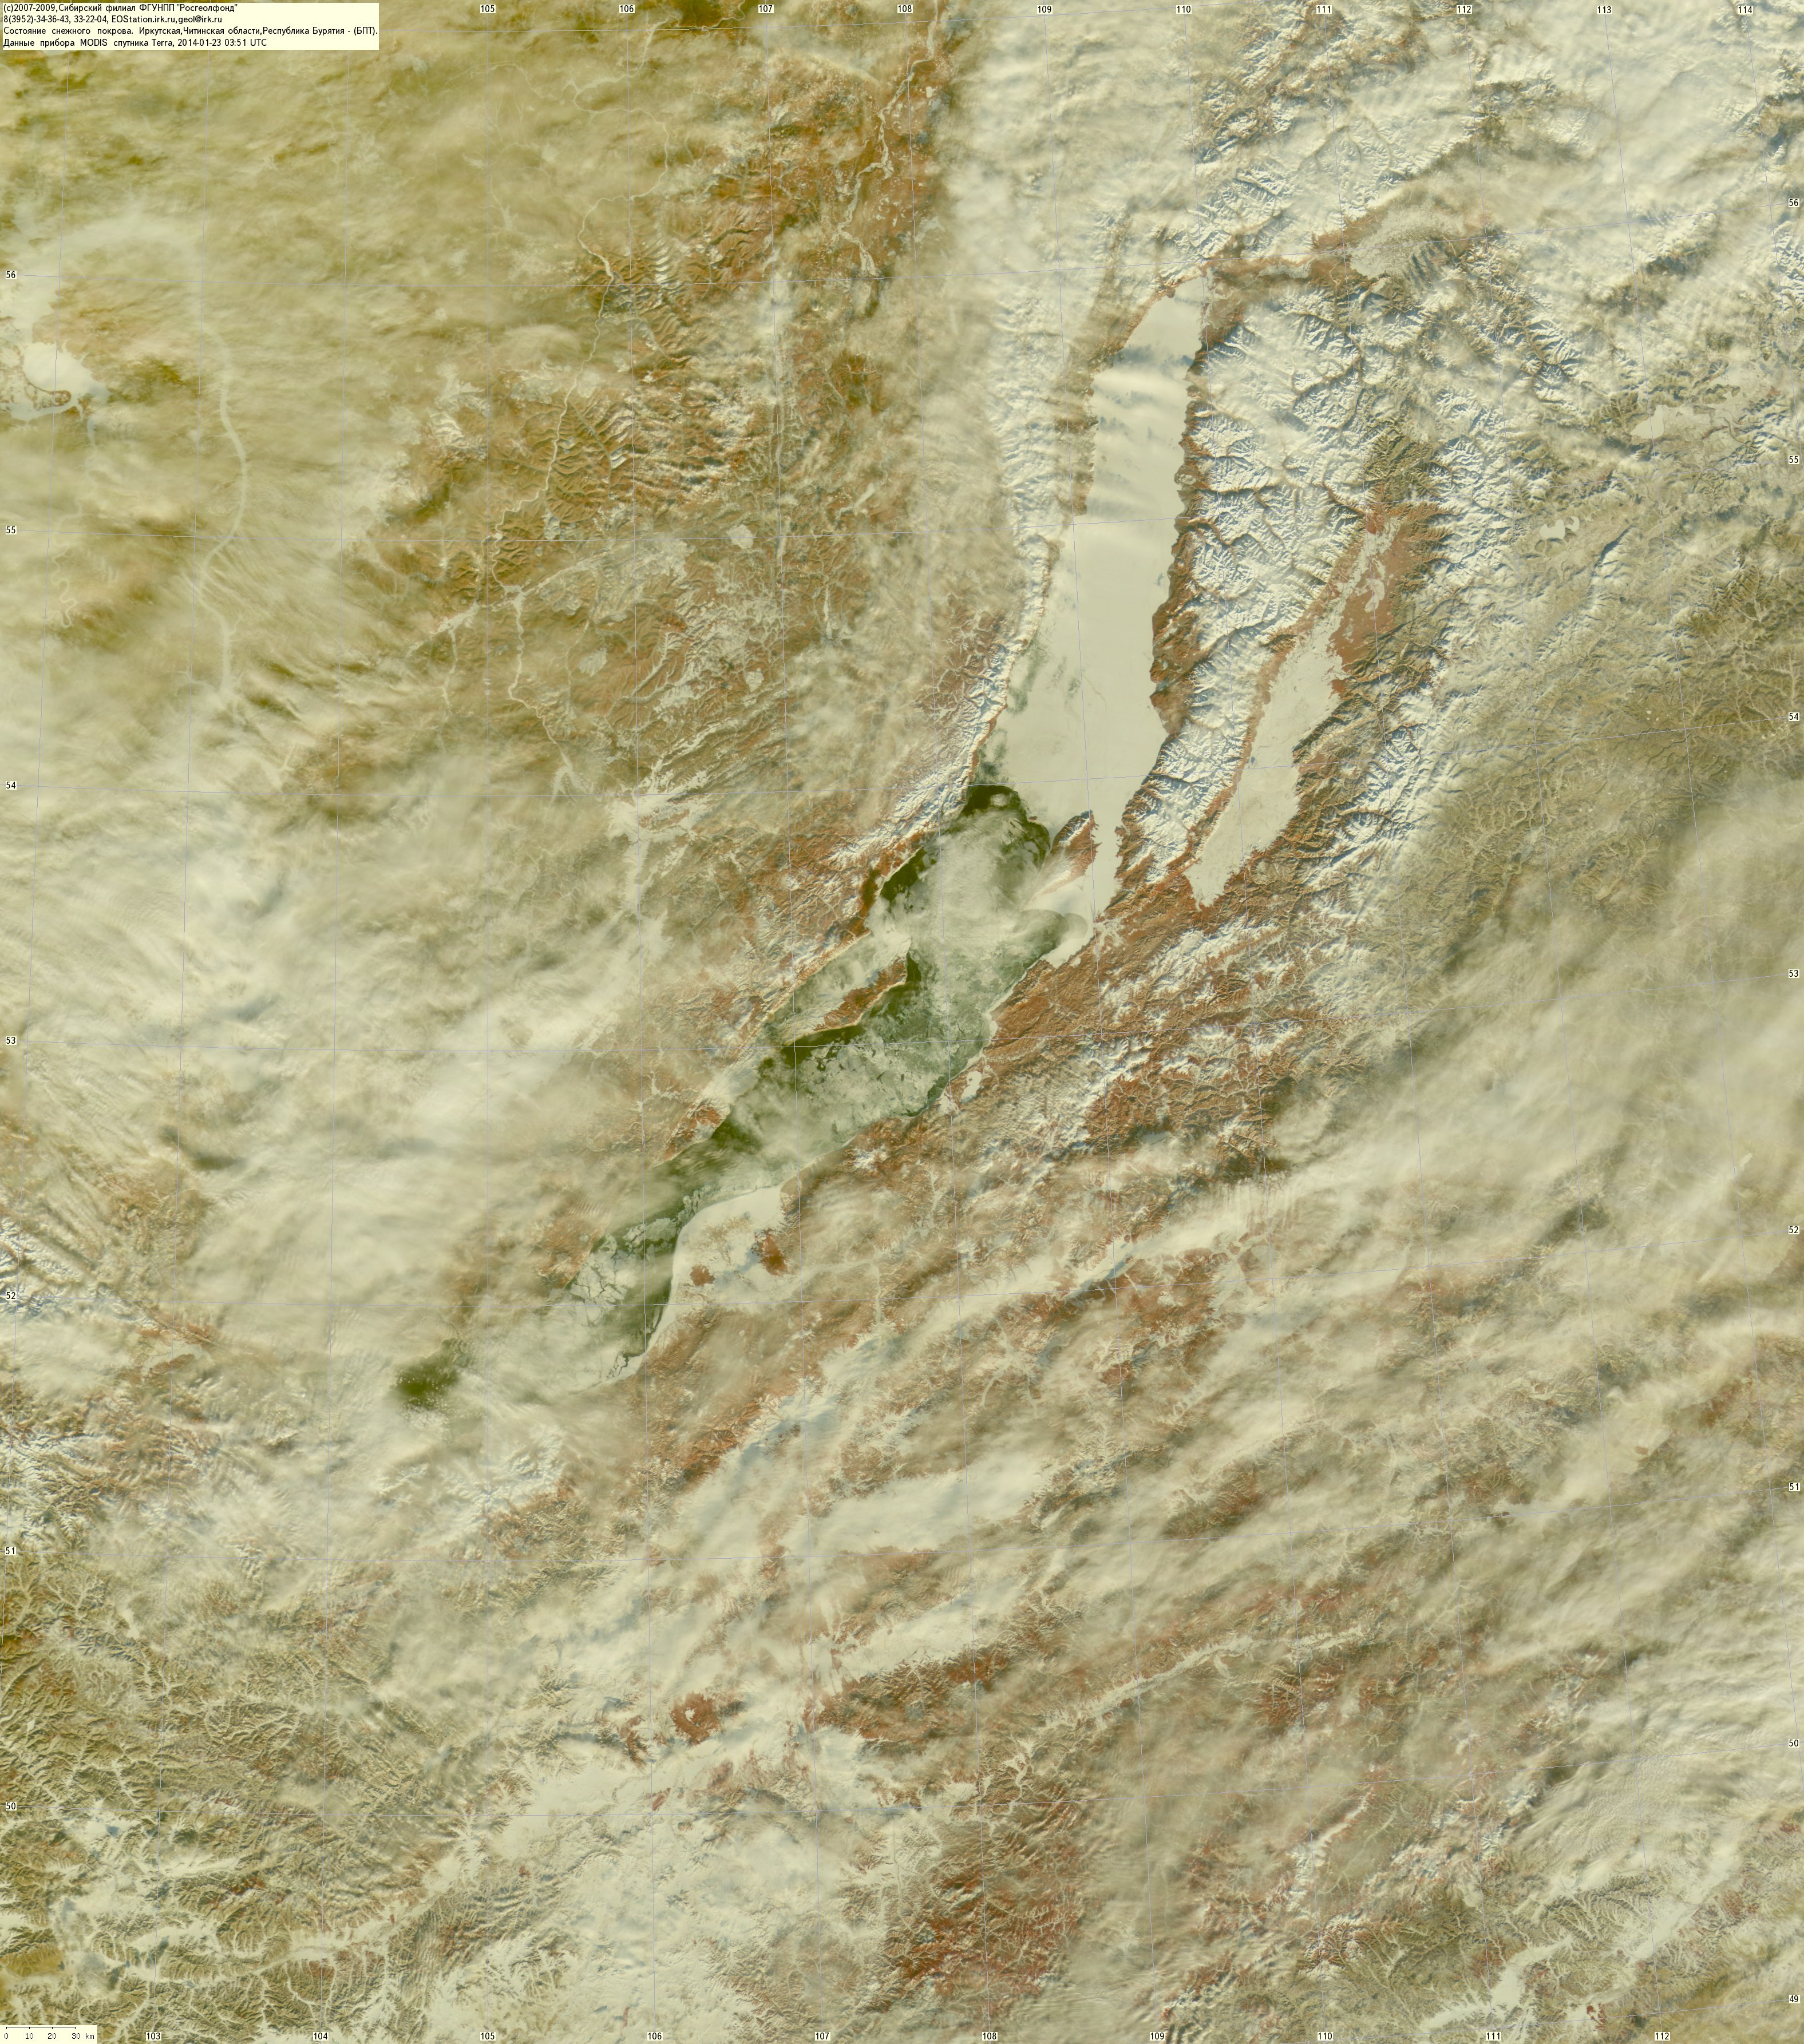 Lake Baikal Satellite Image